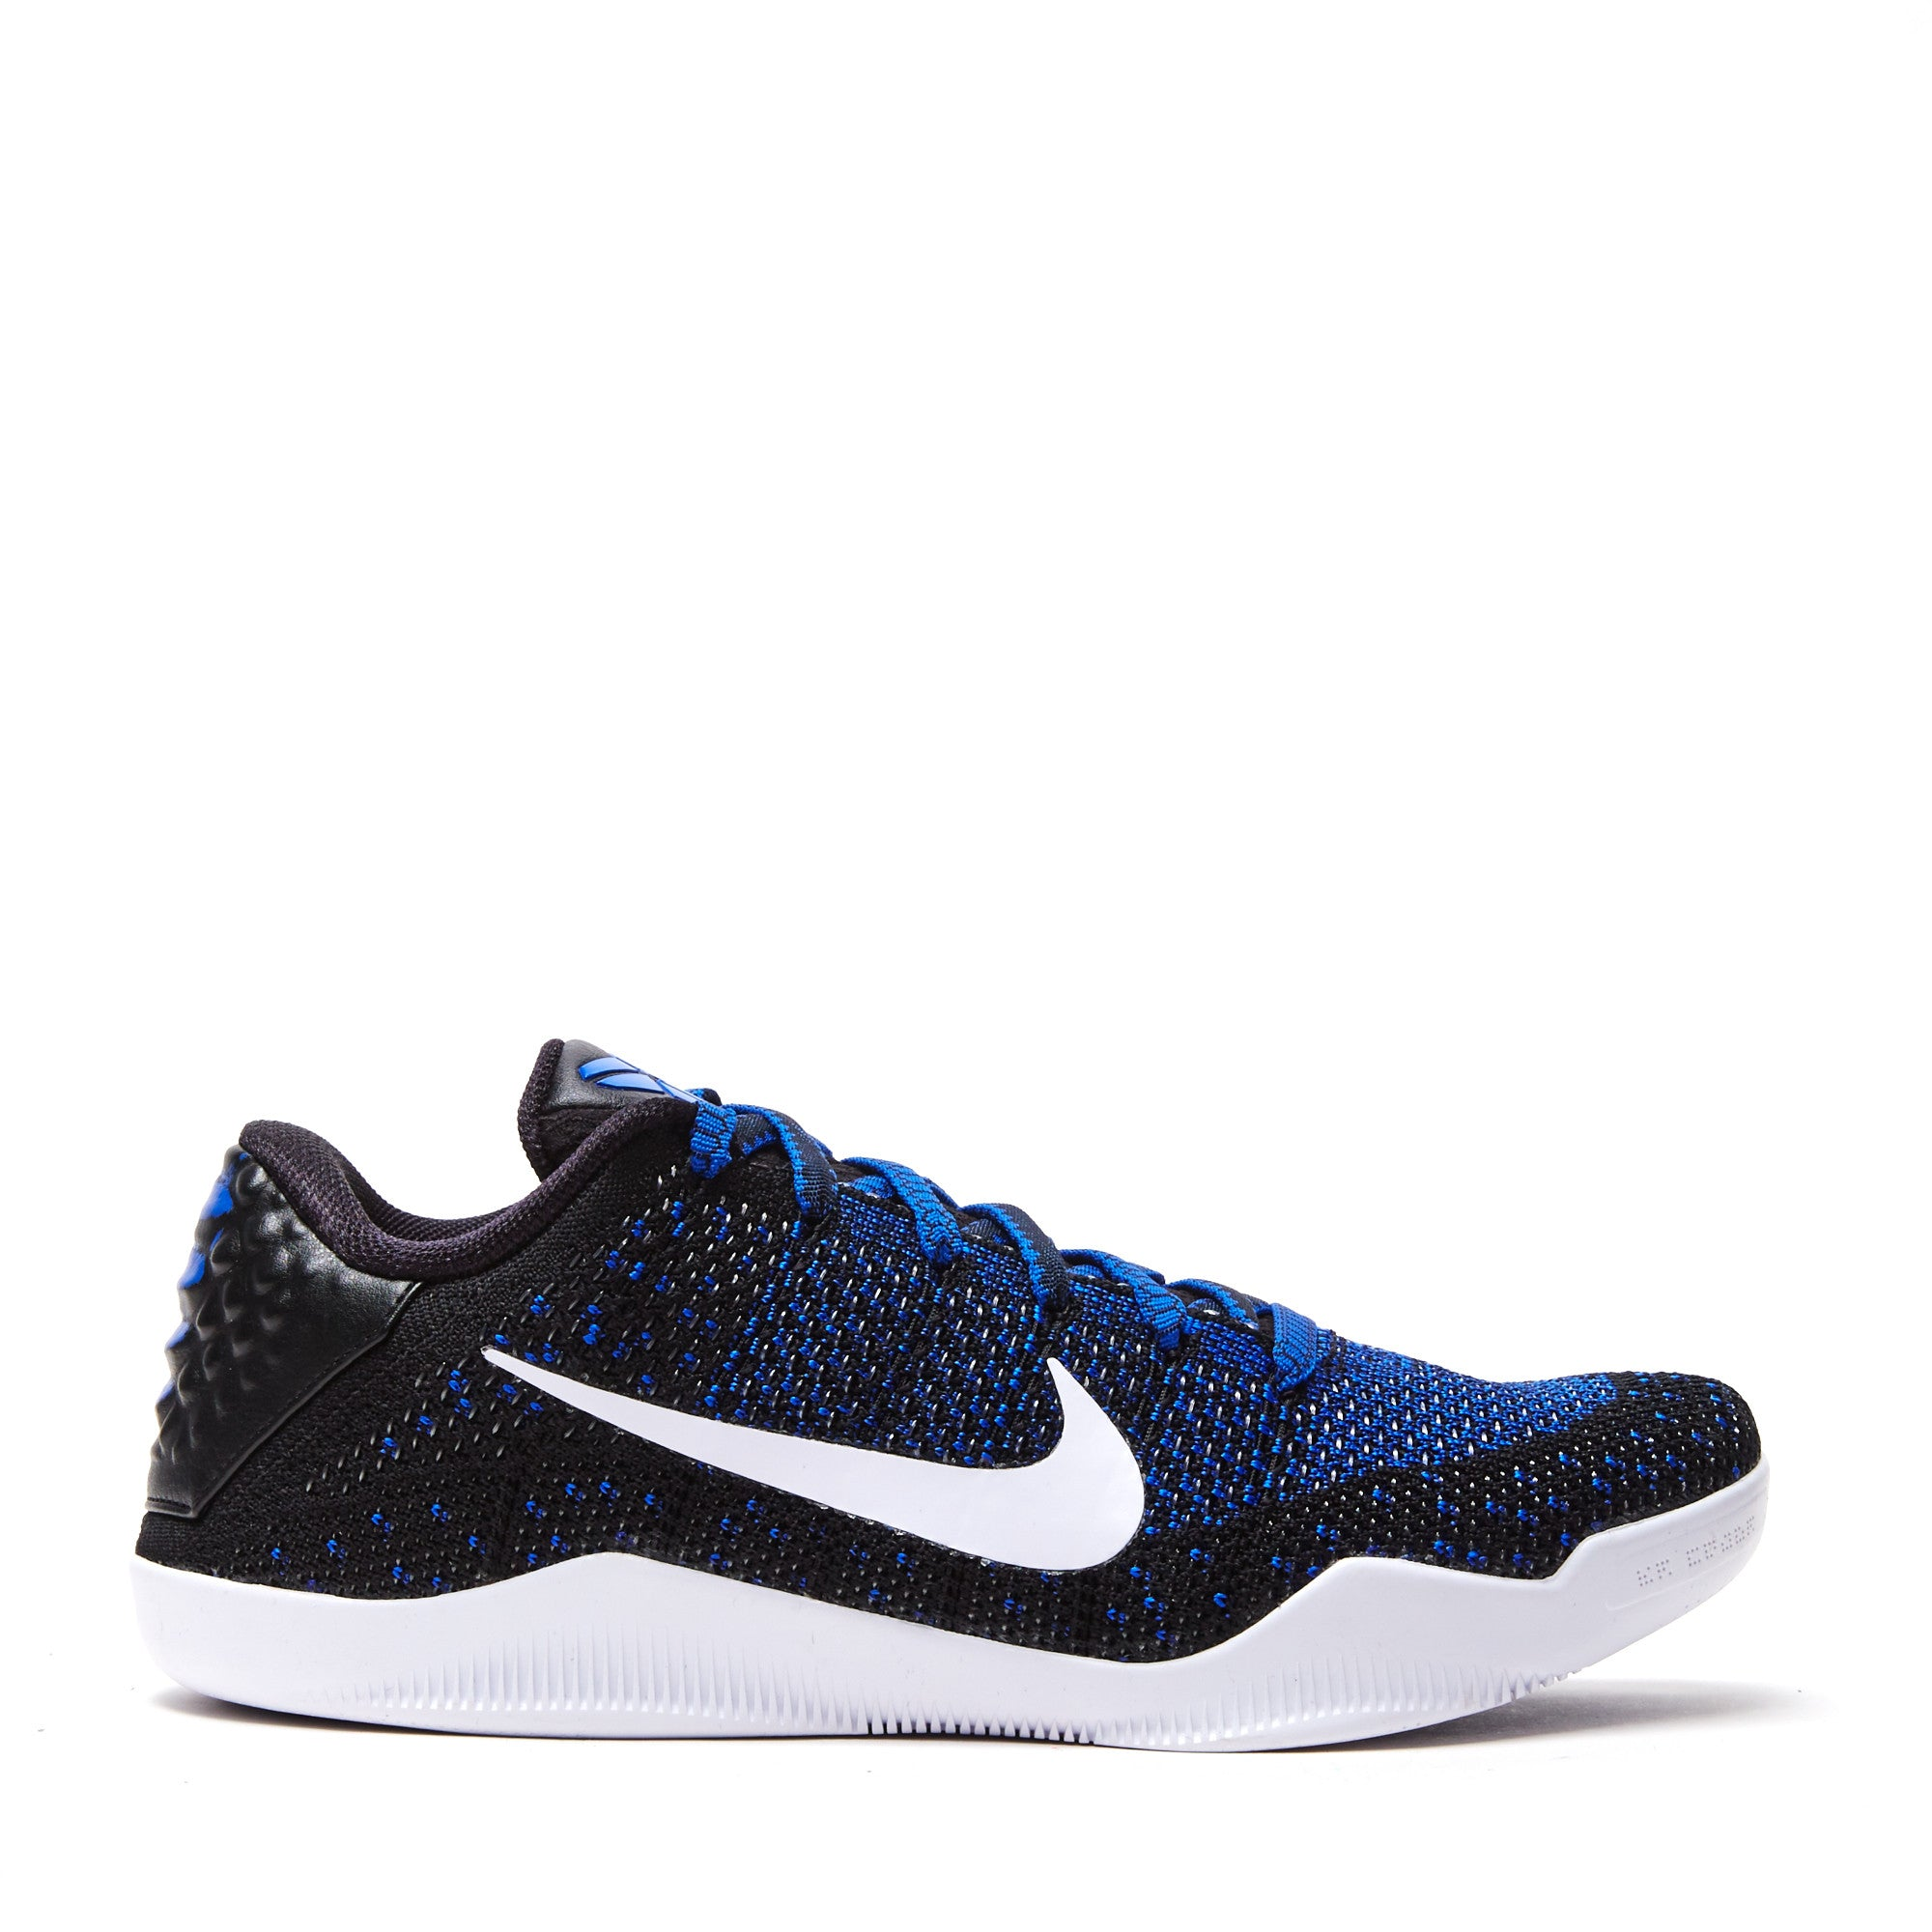 KOBE XI ELITE LOW